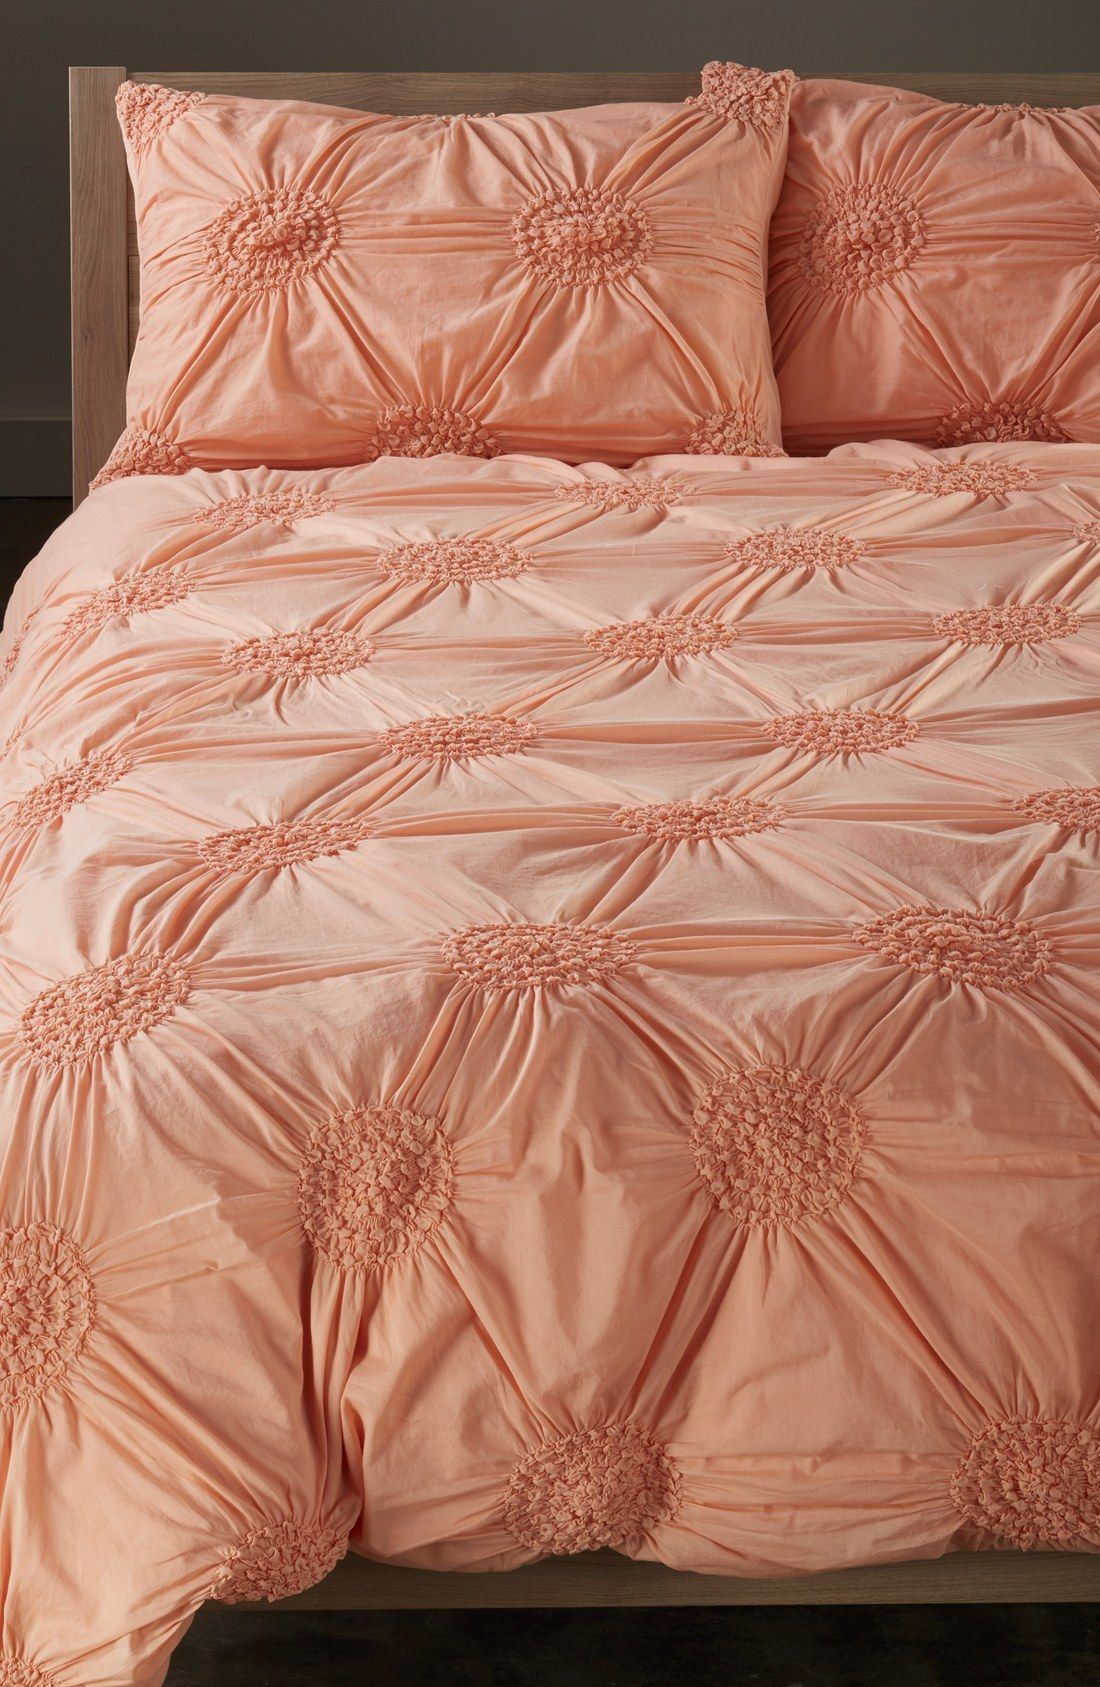 orange cover home in luxury silk item bohemia size from satin set sets duvet bedding bed cotton green imitate sheet queen purple king